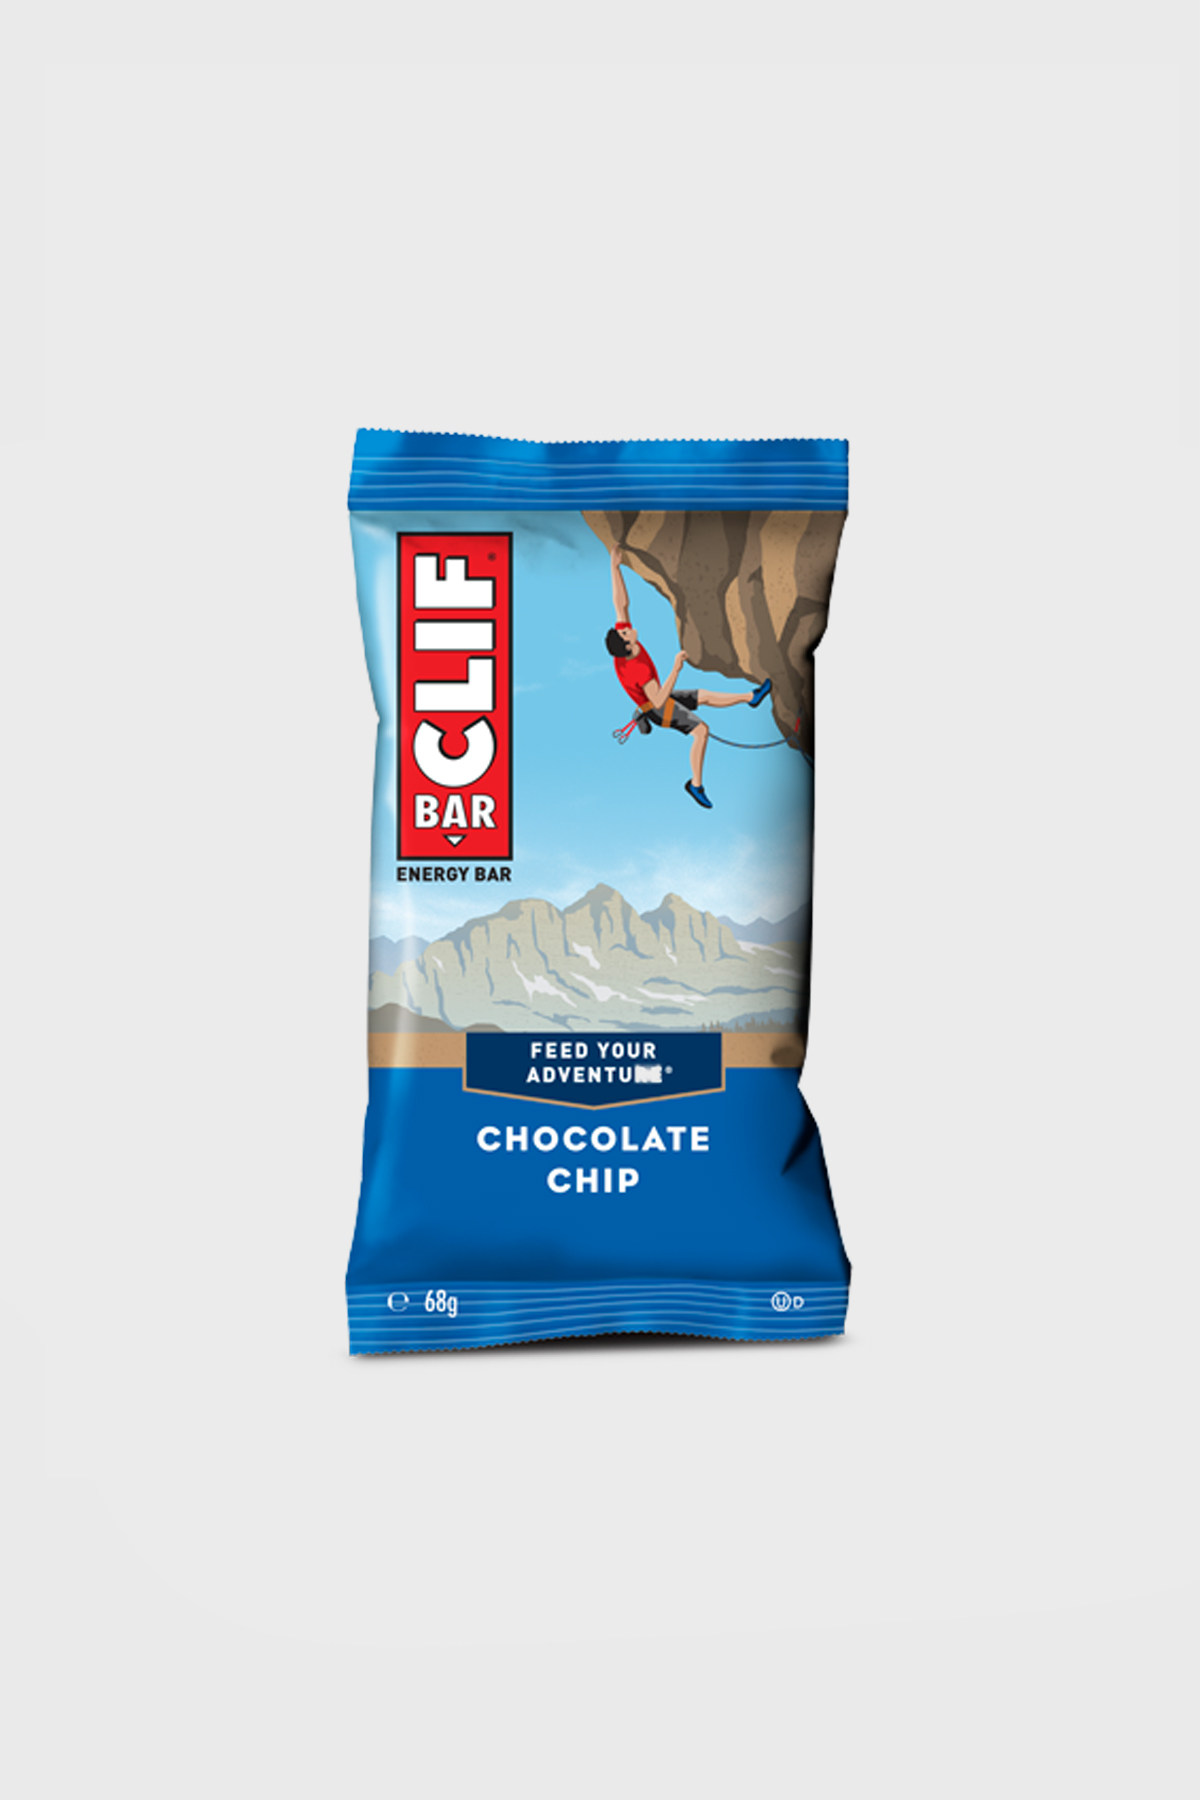 Clif - Energy bar - Chocolate Chip